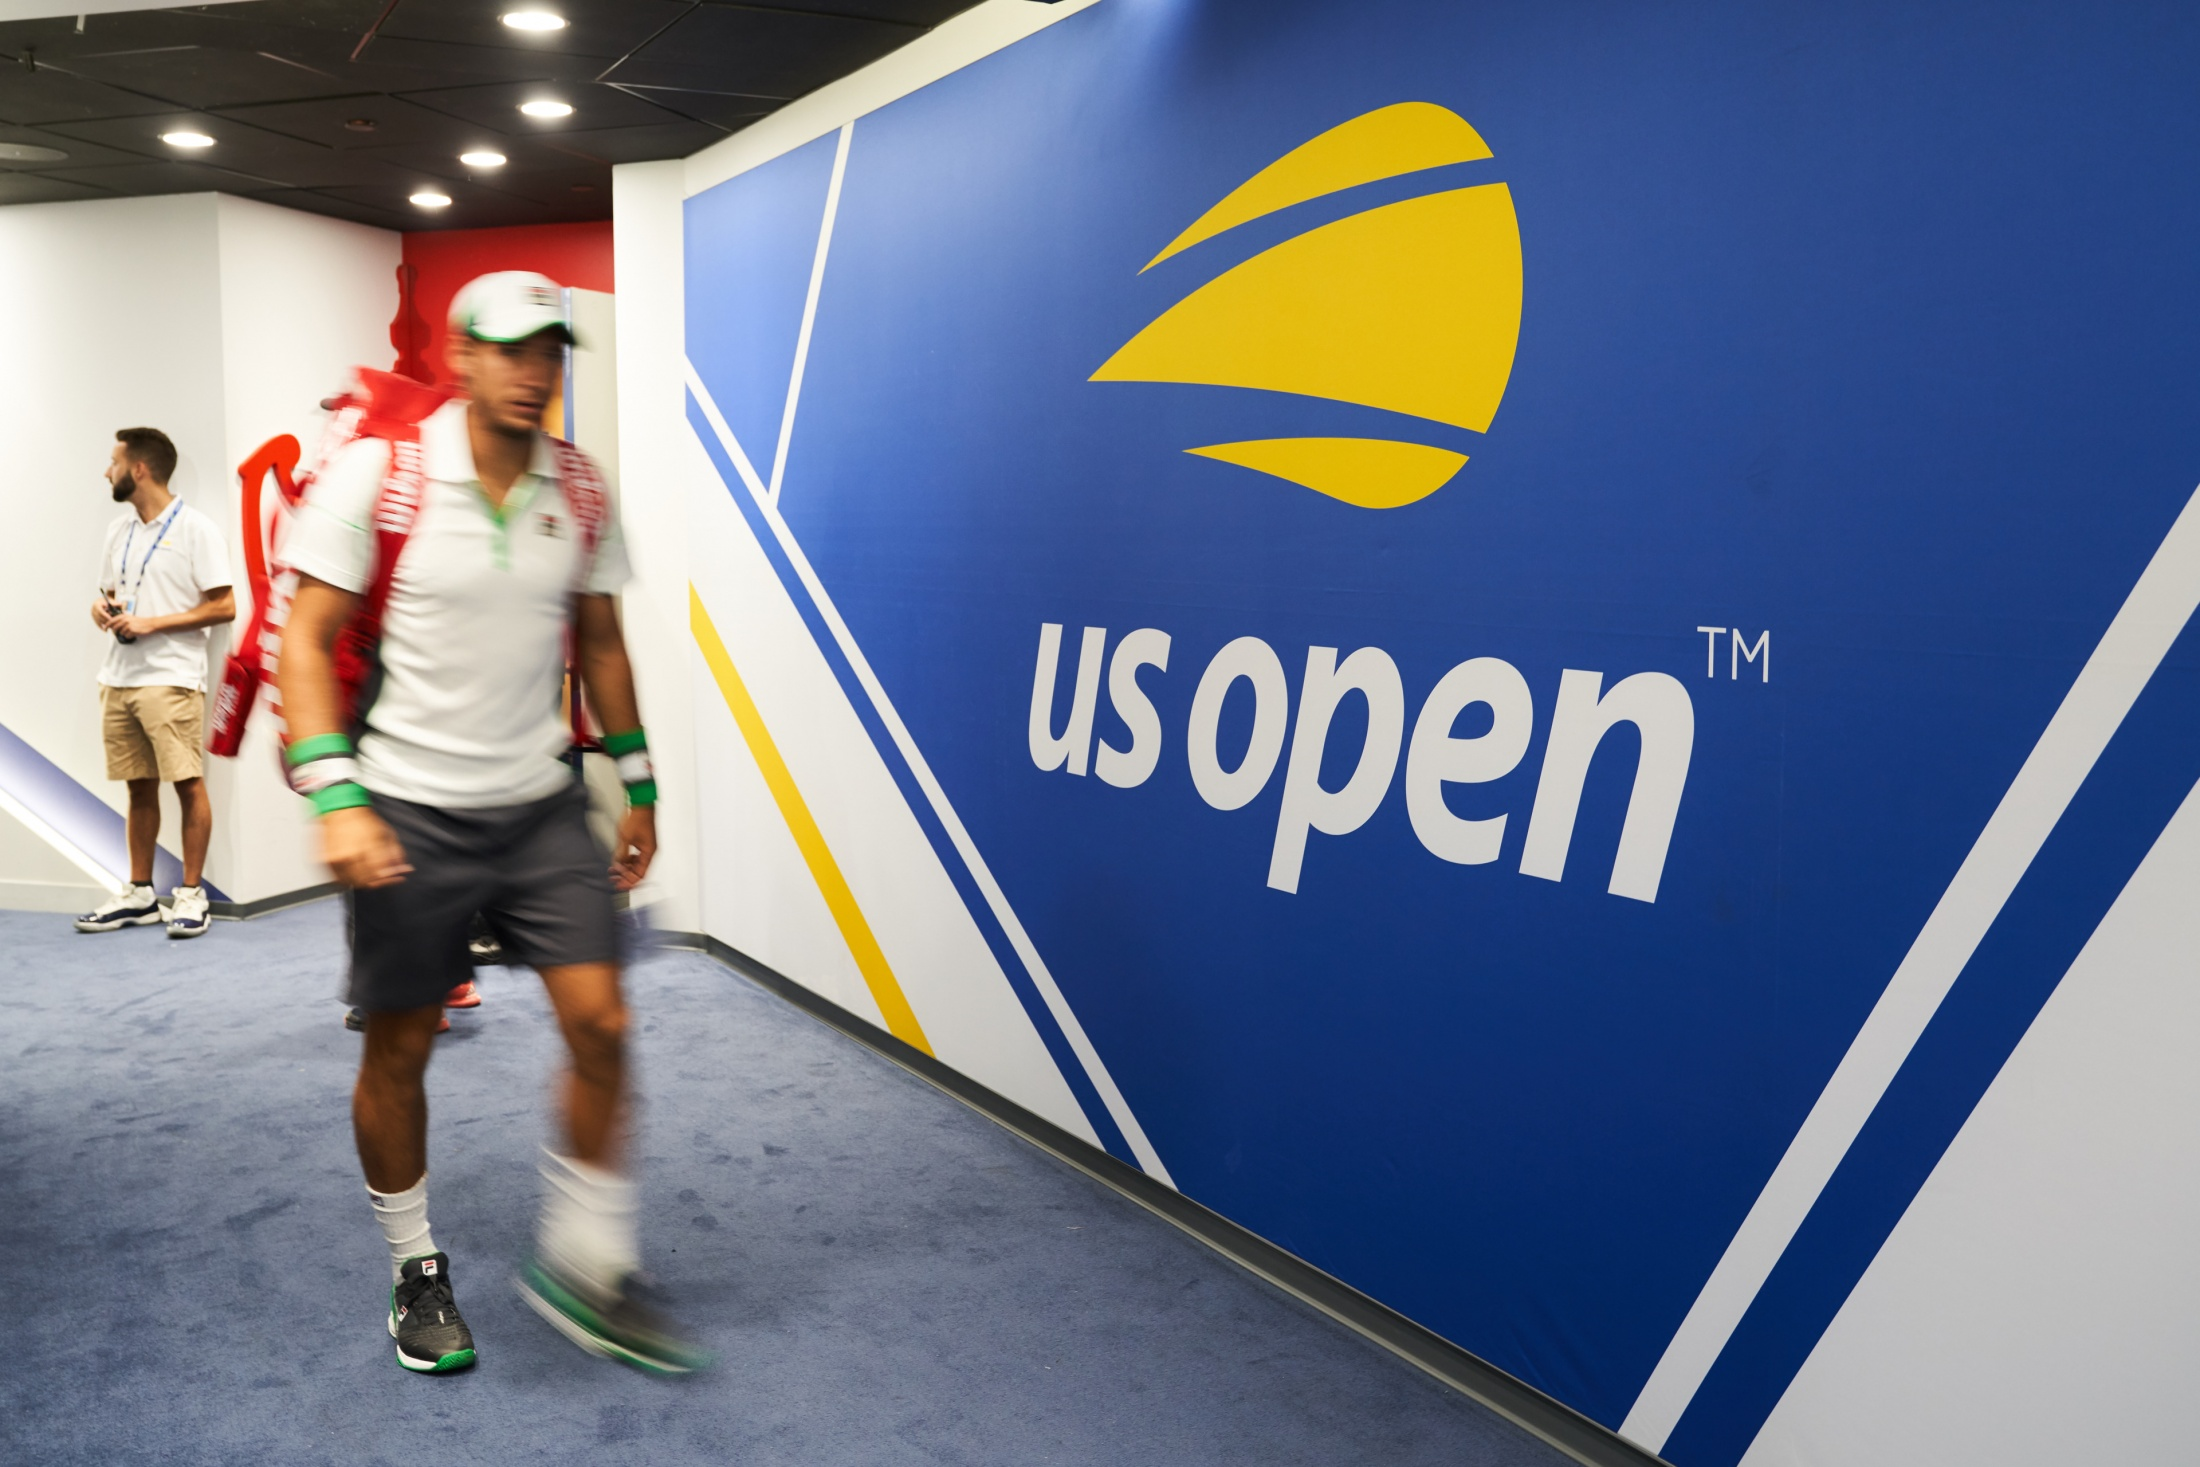 Thumbnail for US Open Visual Identity